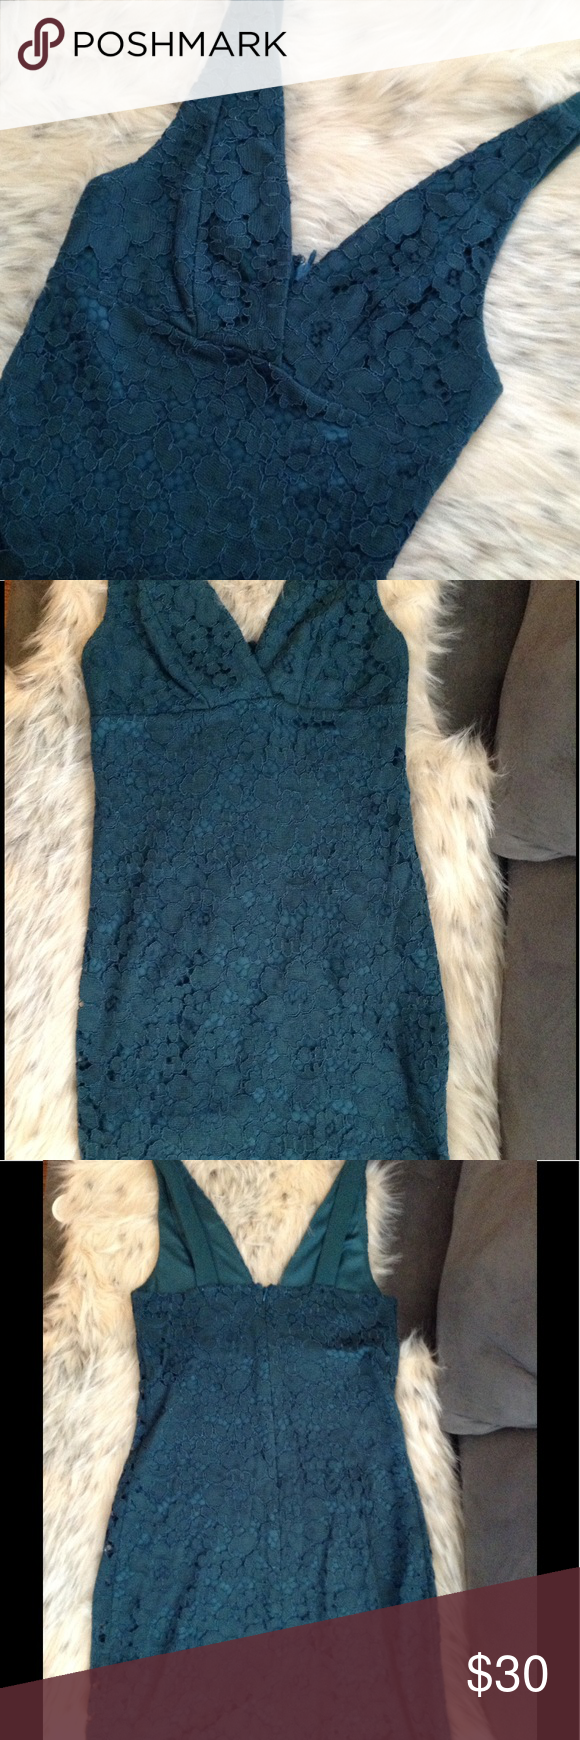 Green dress with lace overlay  Lace TopShop Dress  Emerald green dresses Topshop dresses and Lace